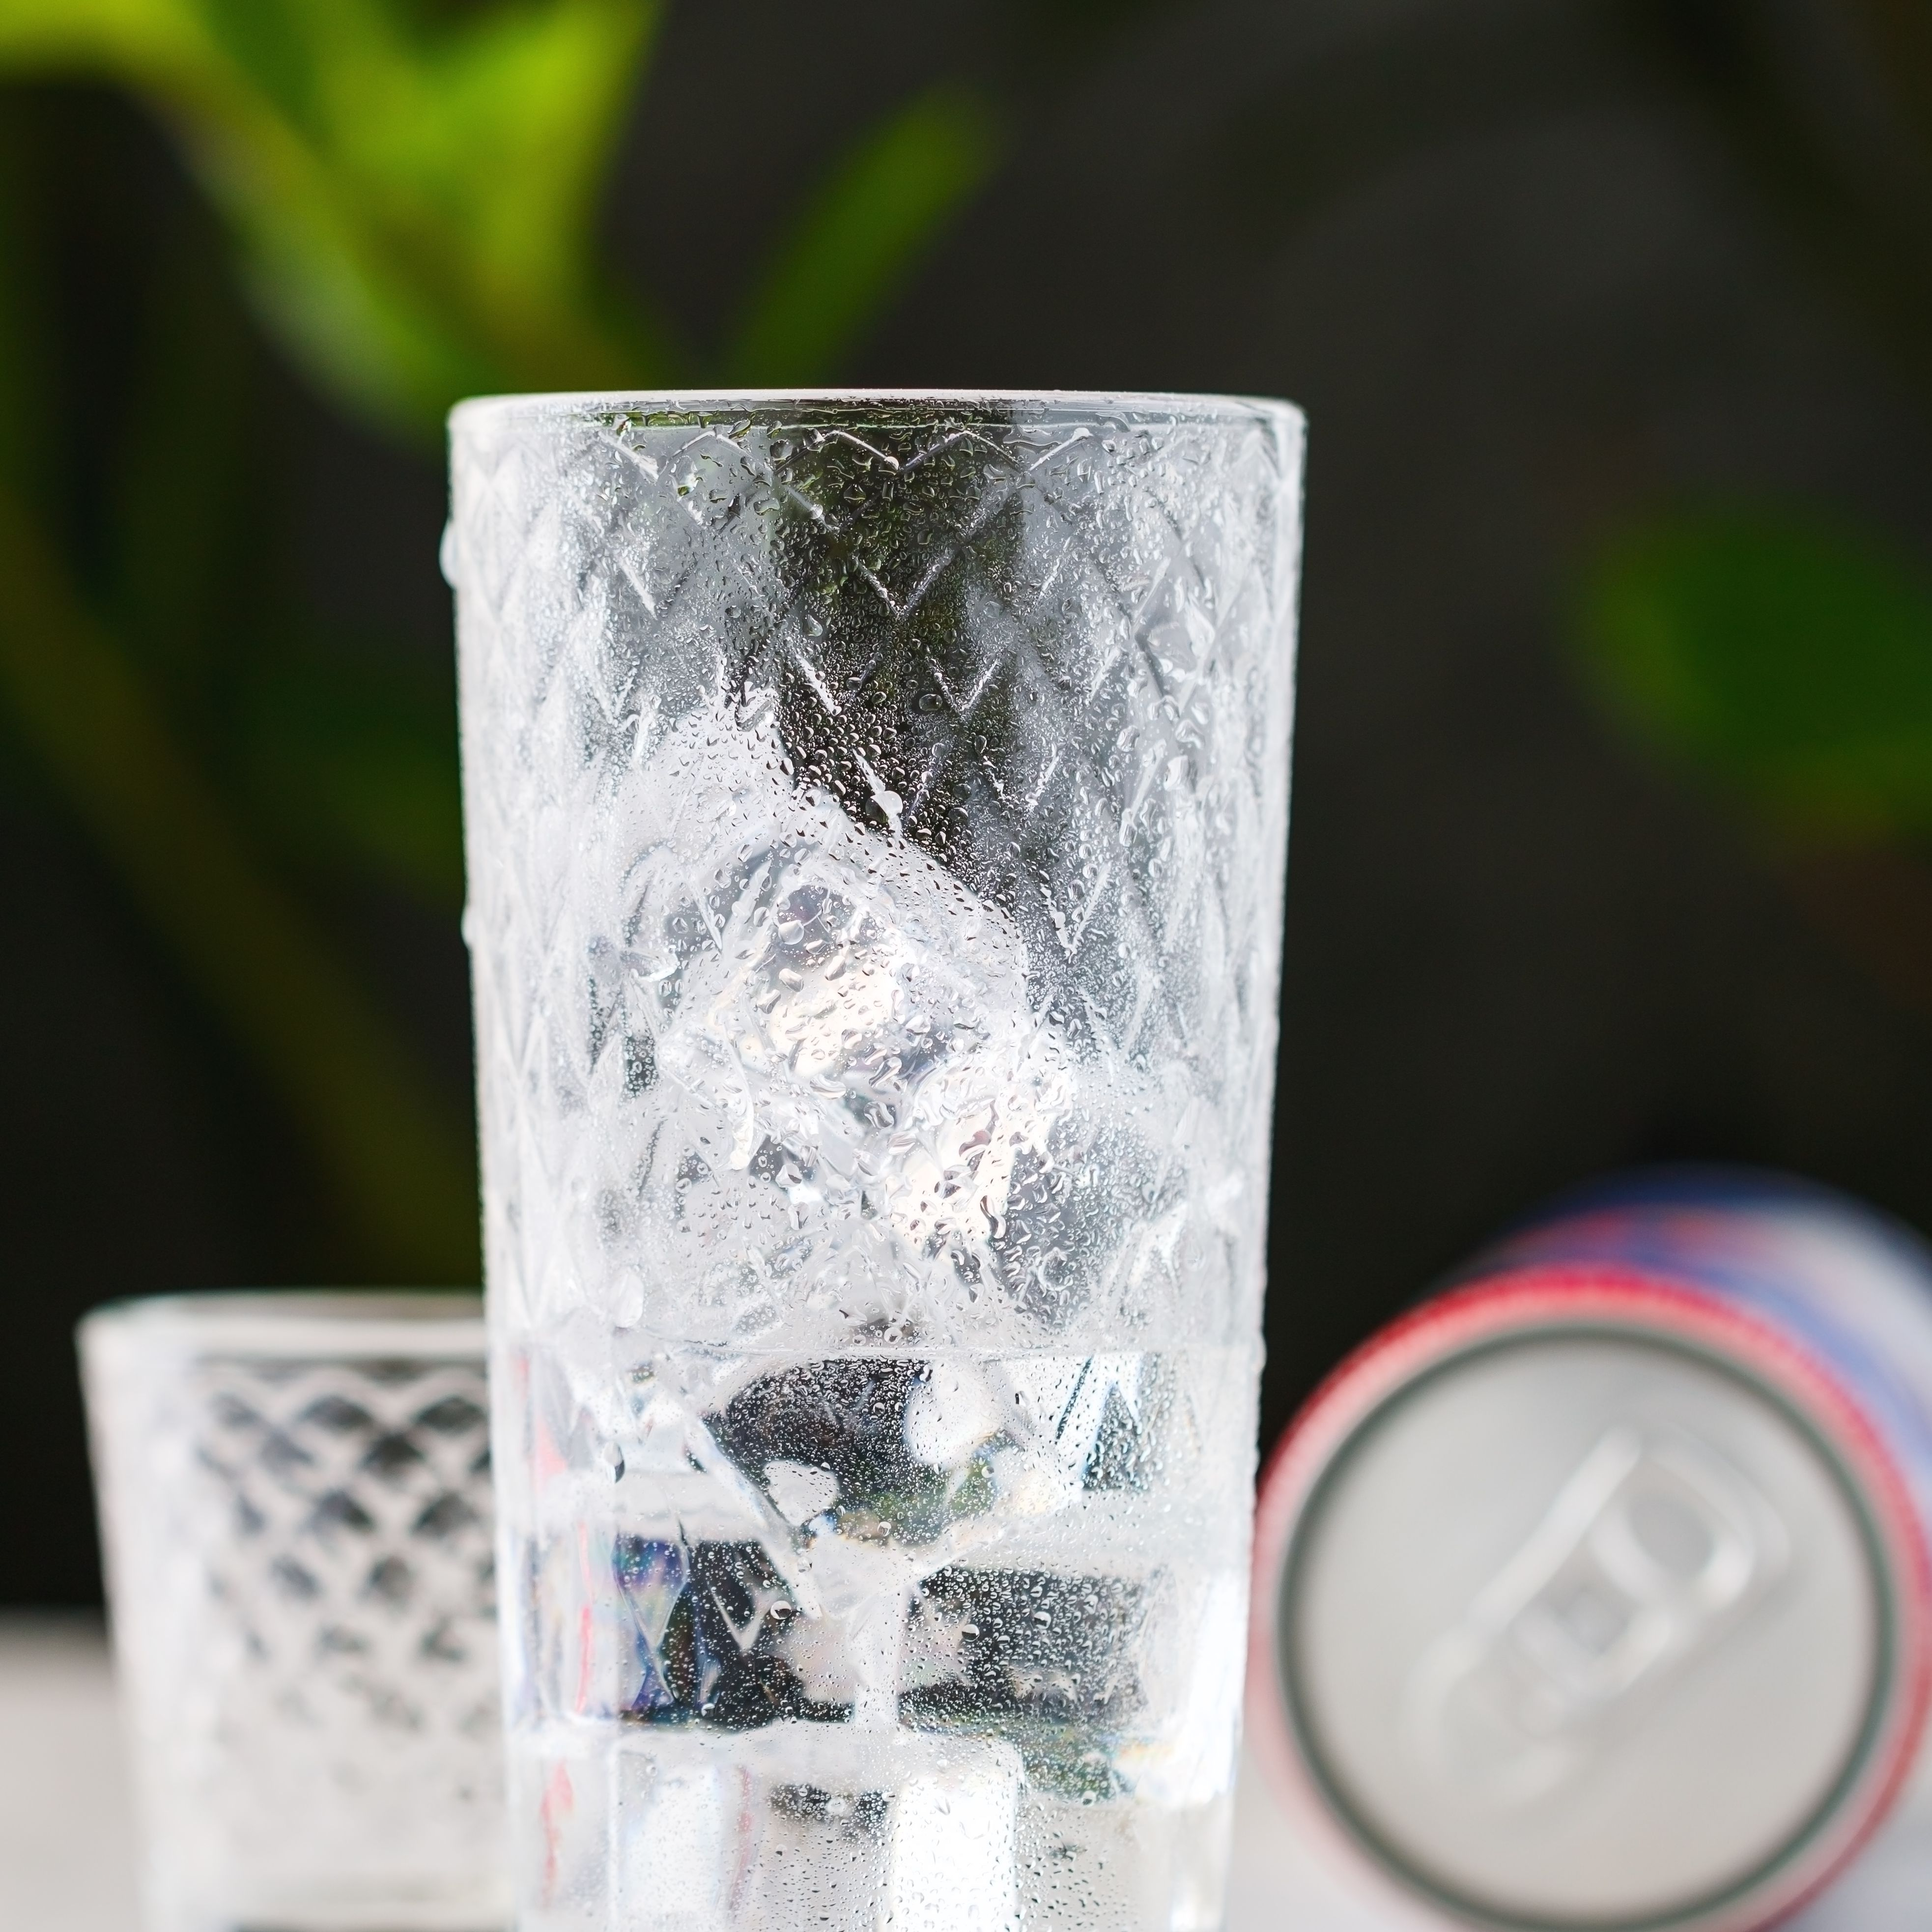 Vodka in a highball glass with ice